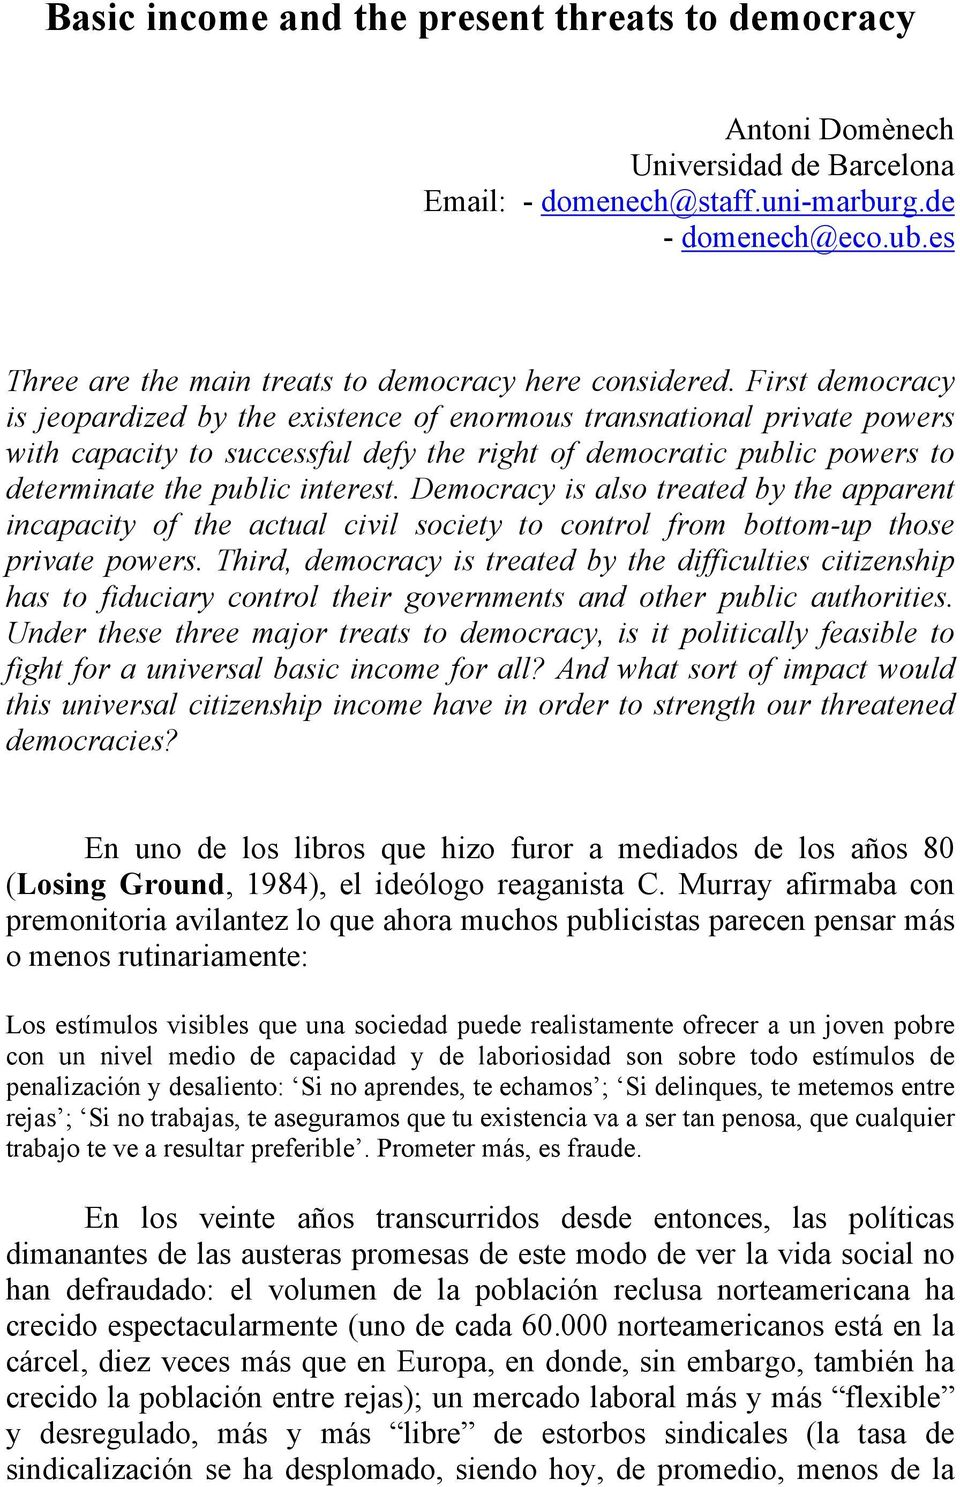 First democracy is jeopardized by the existence of enormous transnational private powers with capacity to successful defy the right of democratic public powers to determinate the public interest.